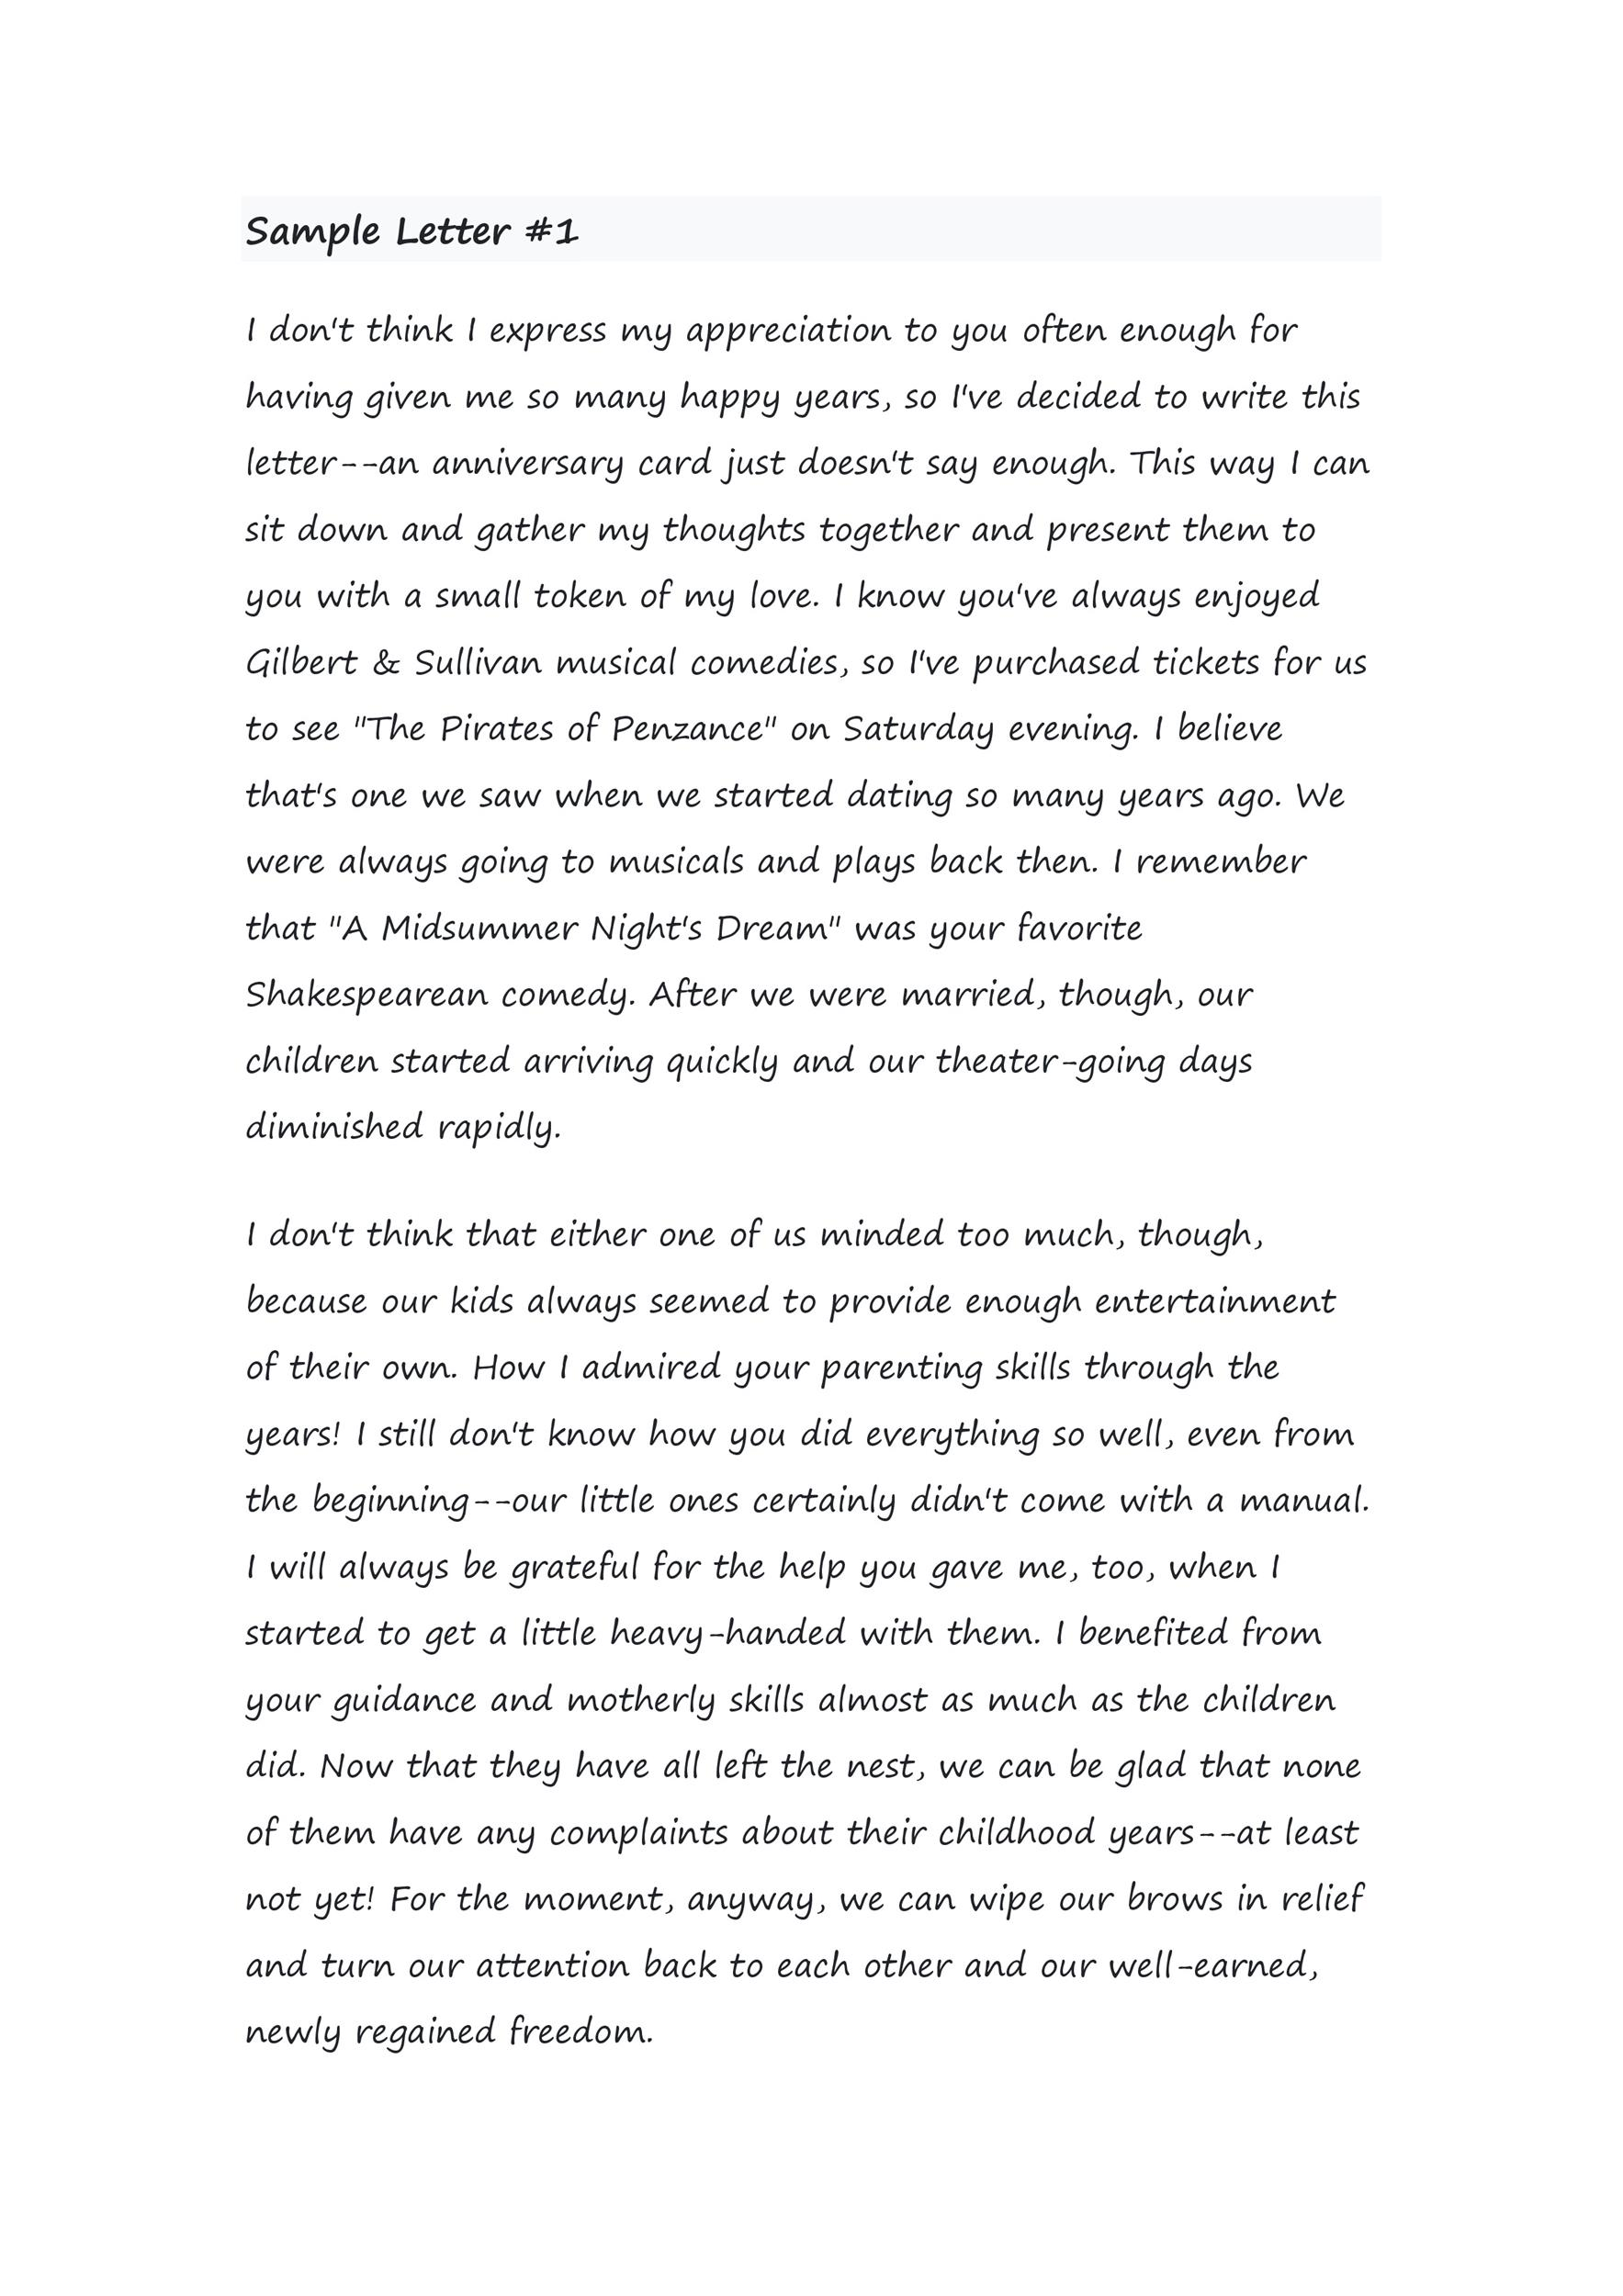 50 Romantic Anniversary Letters (for him or her) ᐅ Template Lab